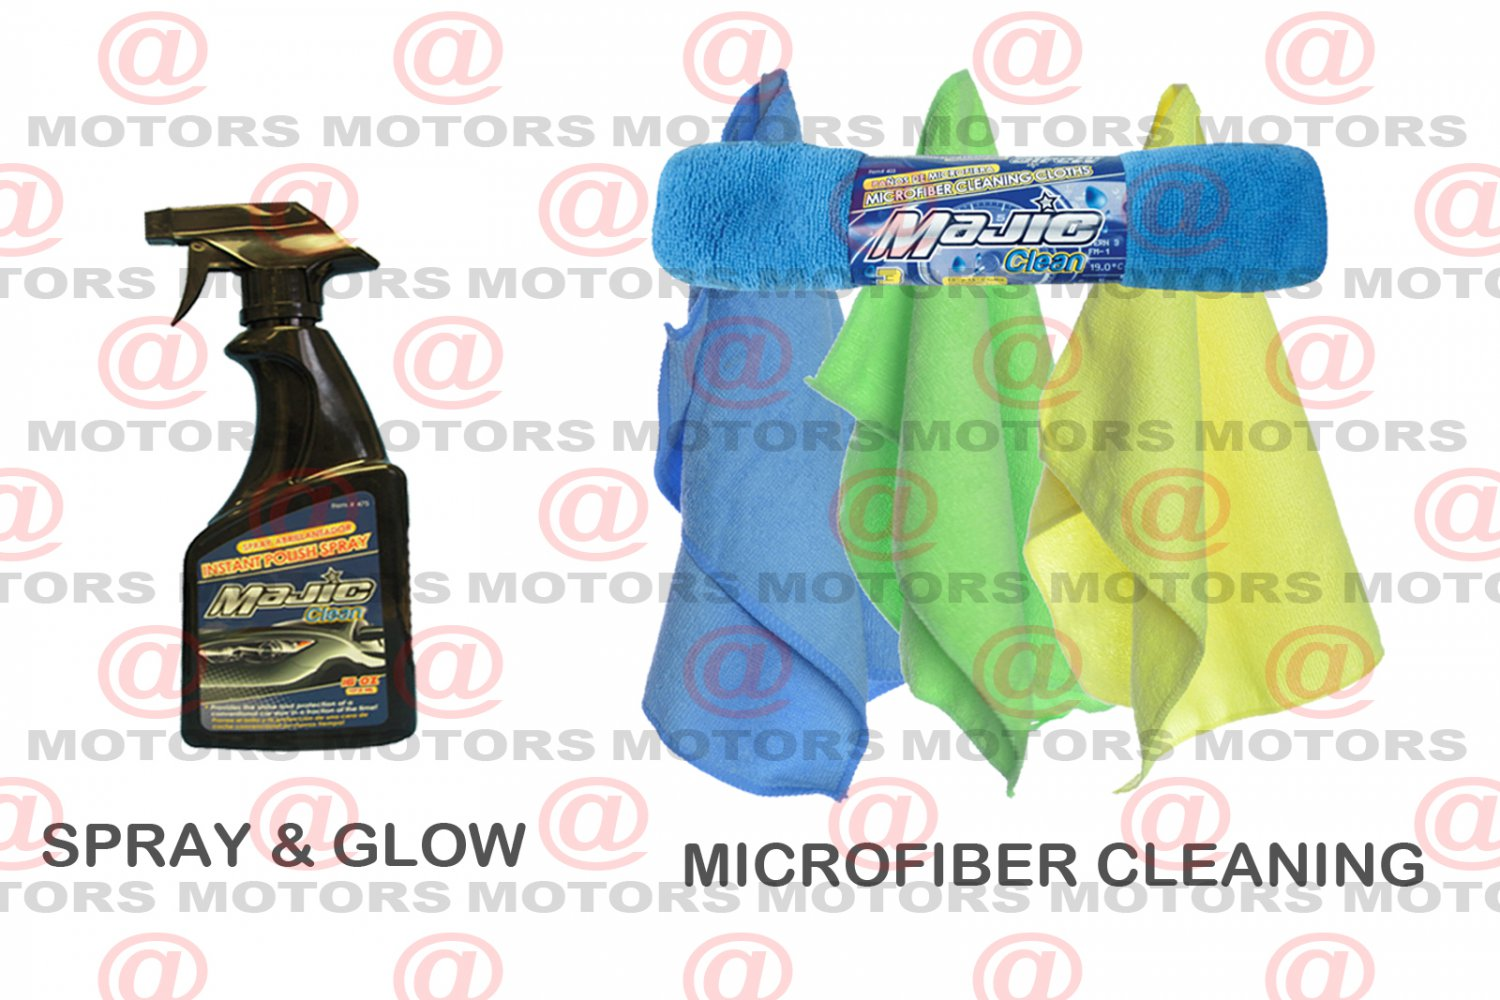 """Spray & Glow Absorbent Microfiber Cleaning Cloths Size 12""""X16"""" Majic 3 Pk New"""